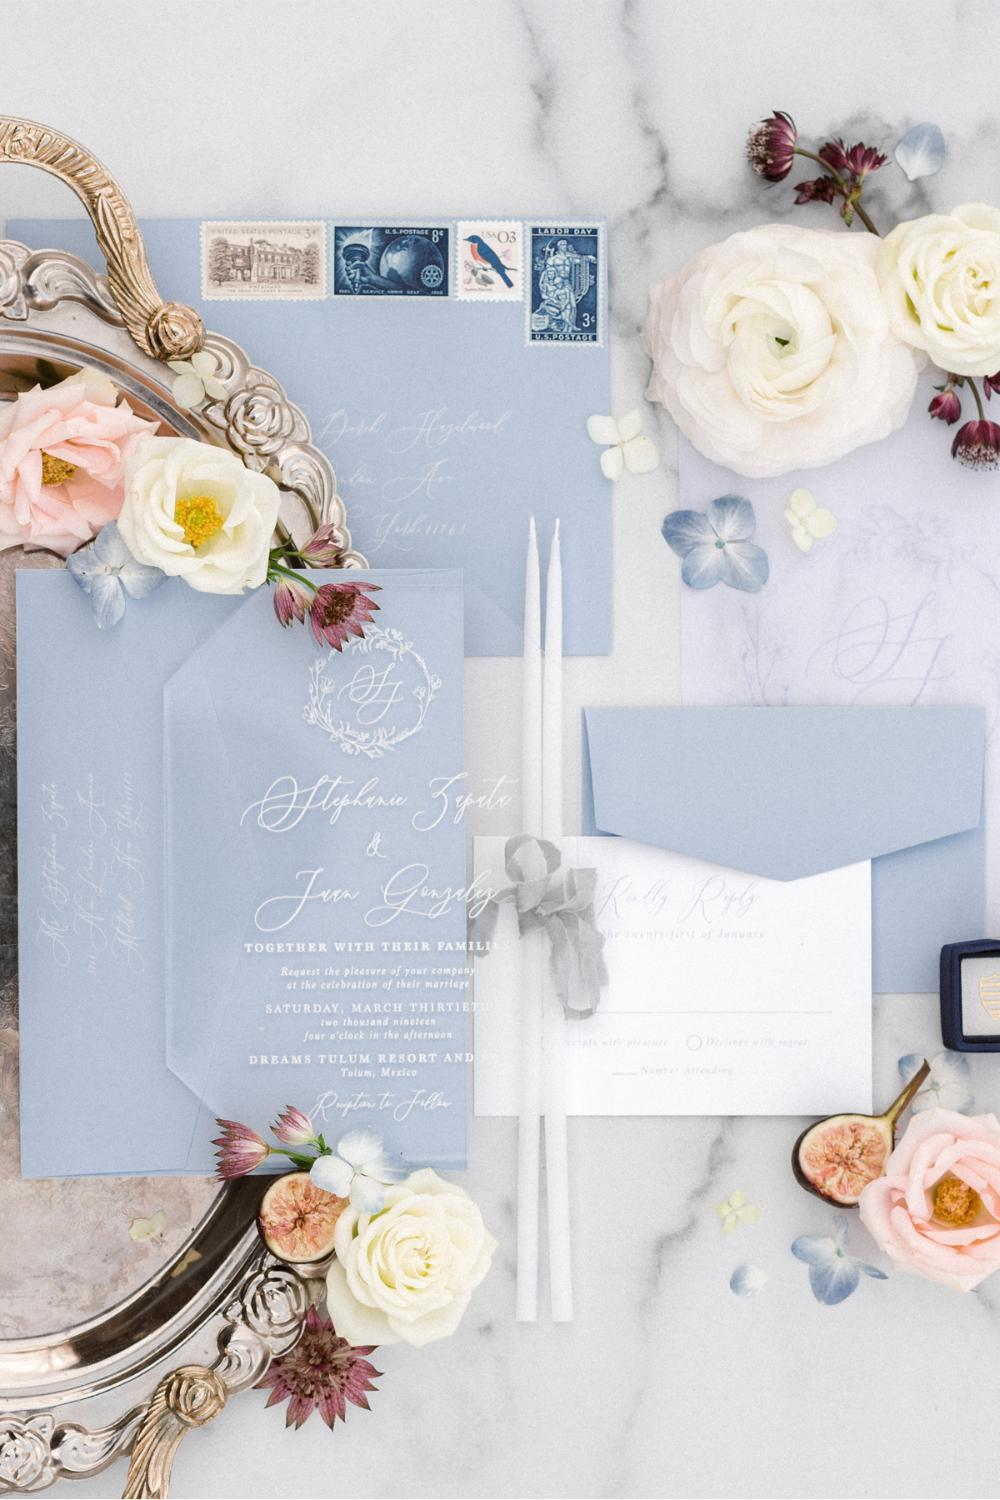 Acrylic Romantic White and Blue Calligraphy Transparent Wedding Invitation with Floral Monogram in Crystal Clear, Vellum Overlay & Envelopes